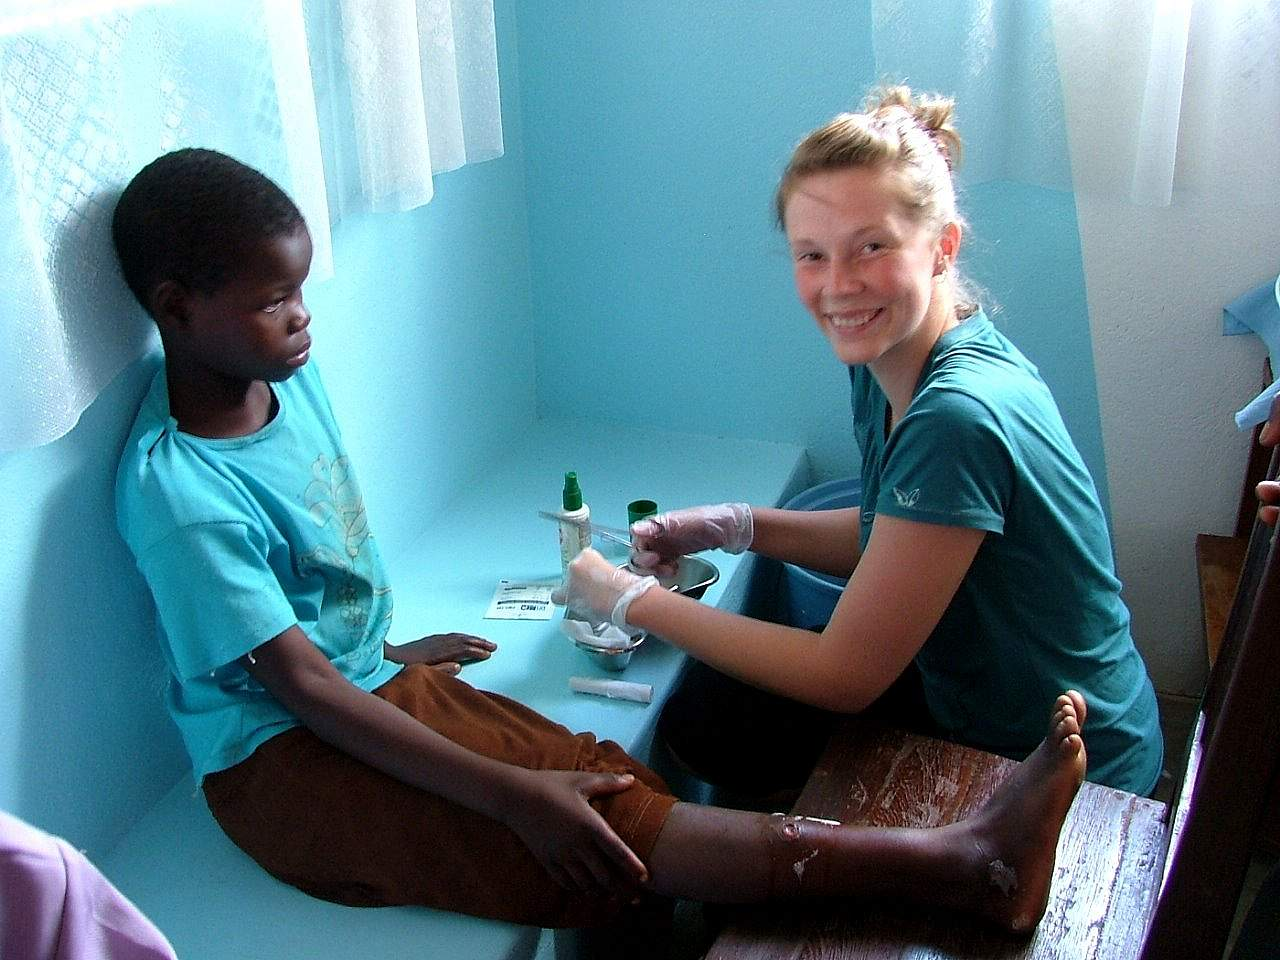 Ghana Medical Volunteer - Gap Year Program